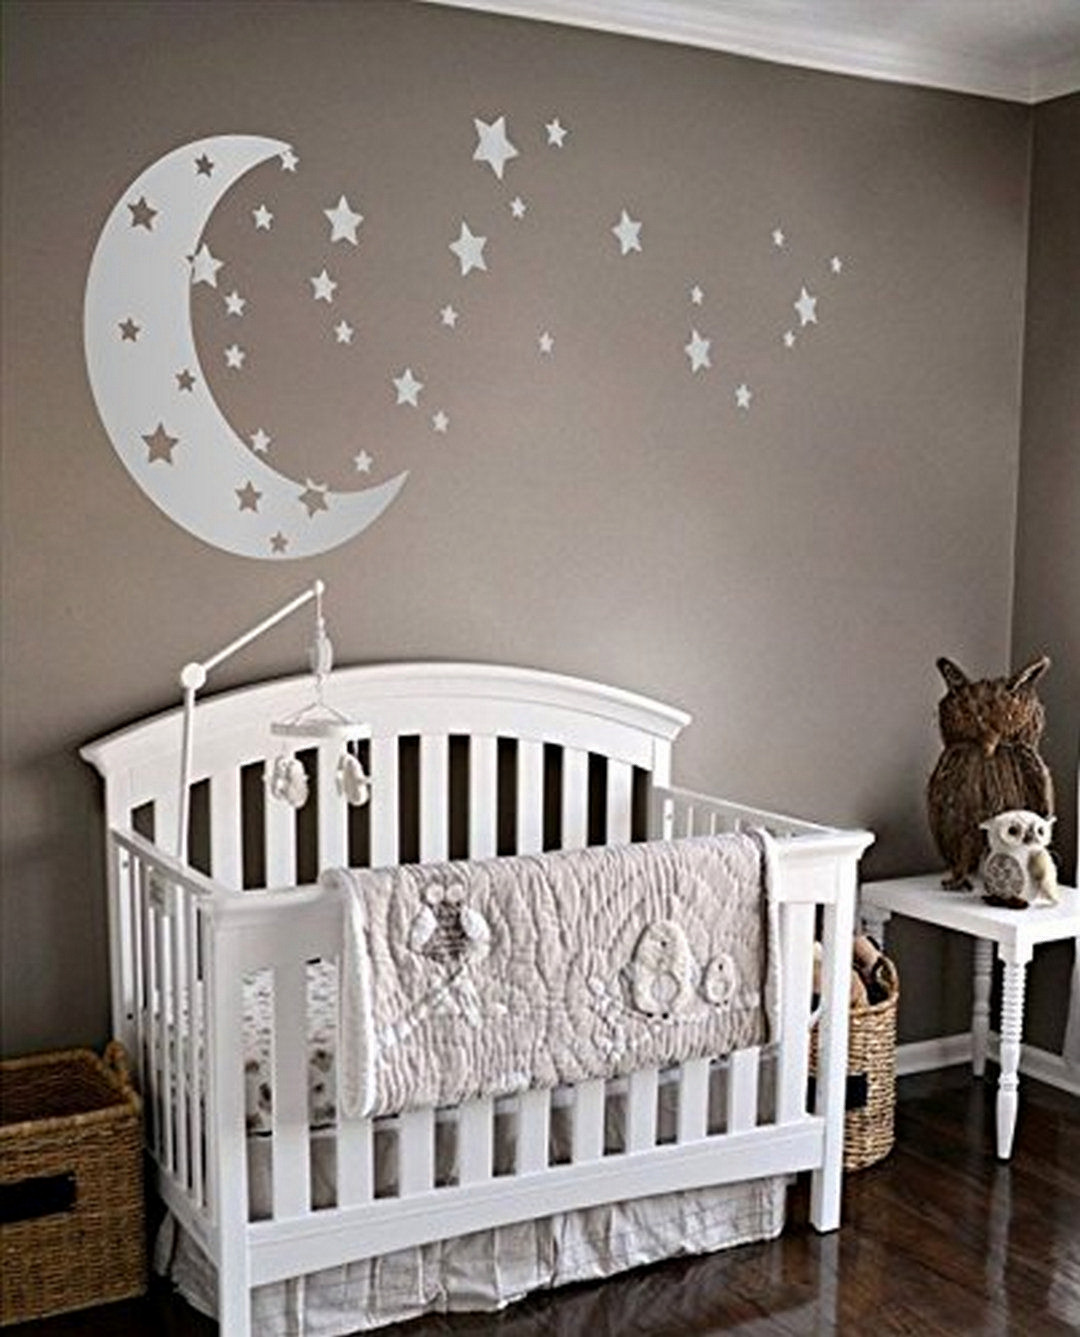 Baby Room Wall Decorating Ideas  Moonee Pond Gable House A New Modern House with A Walled